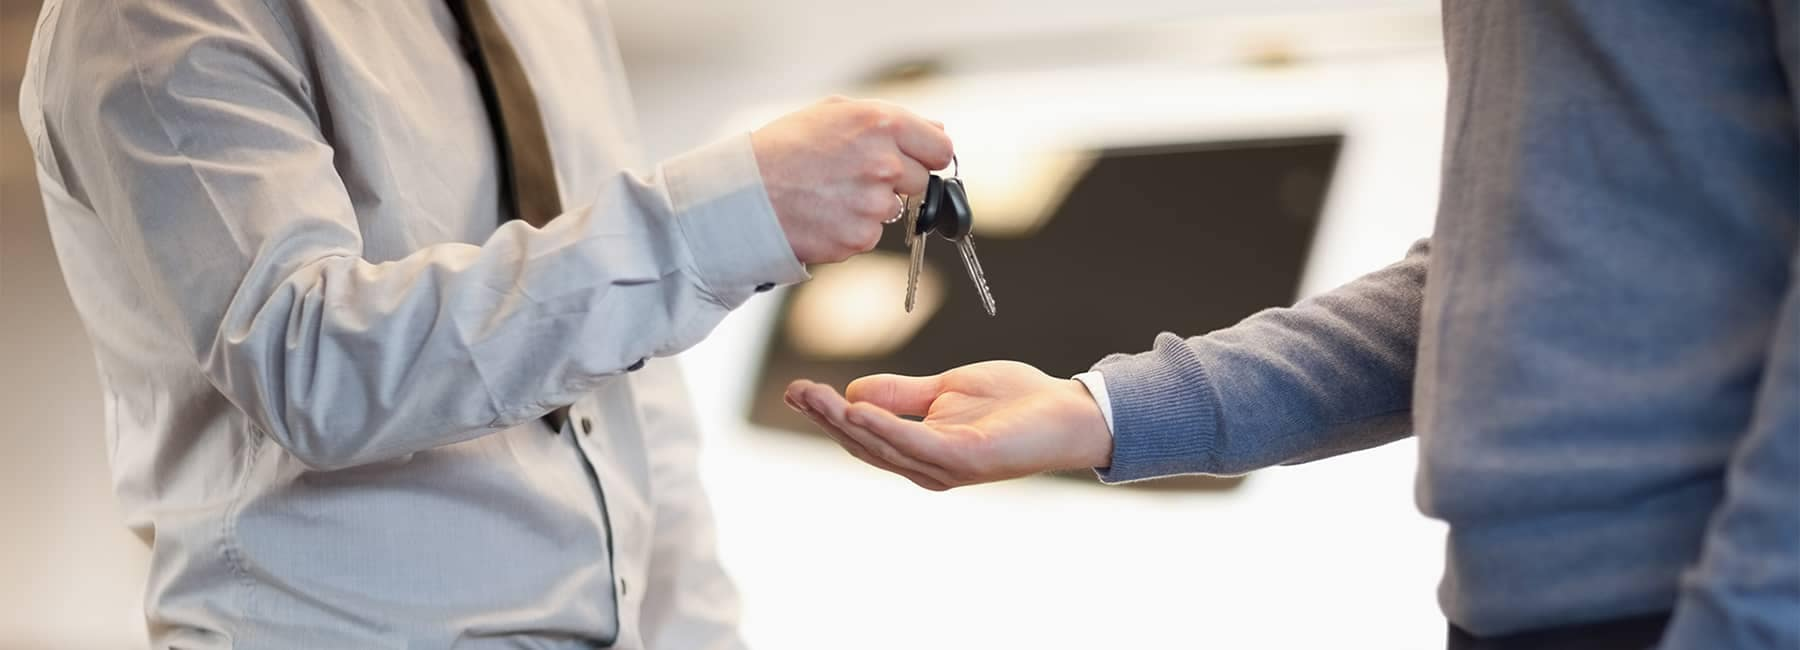 Salesman Handing Car Keys to Man